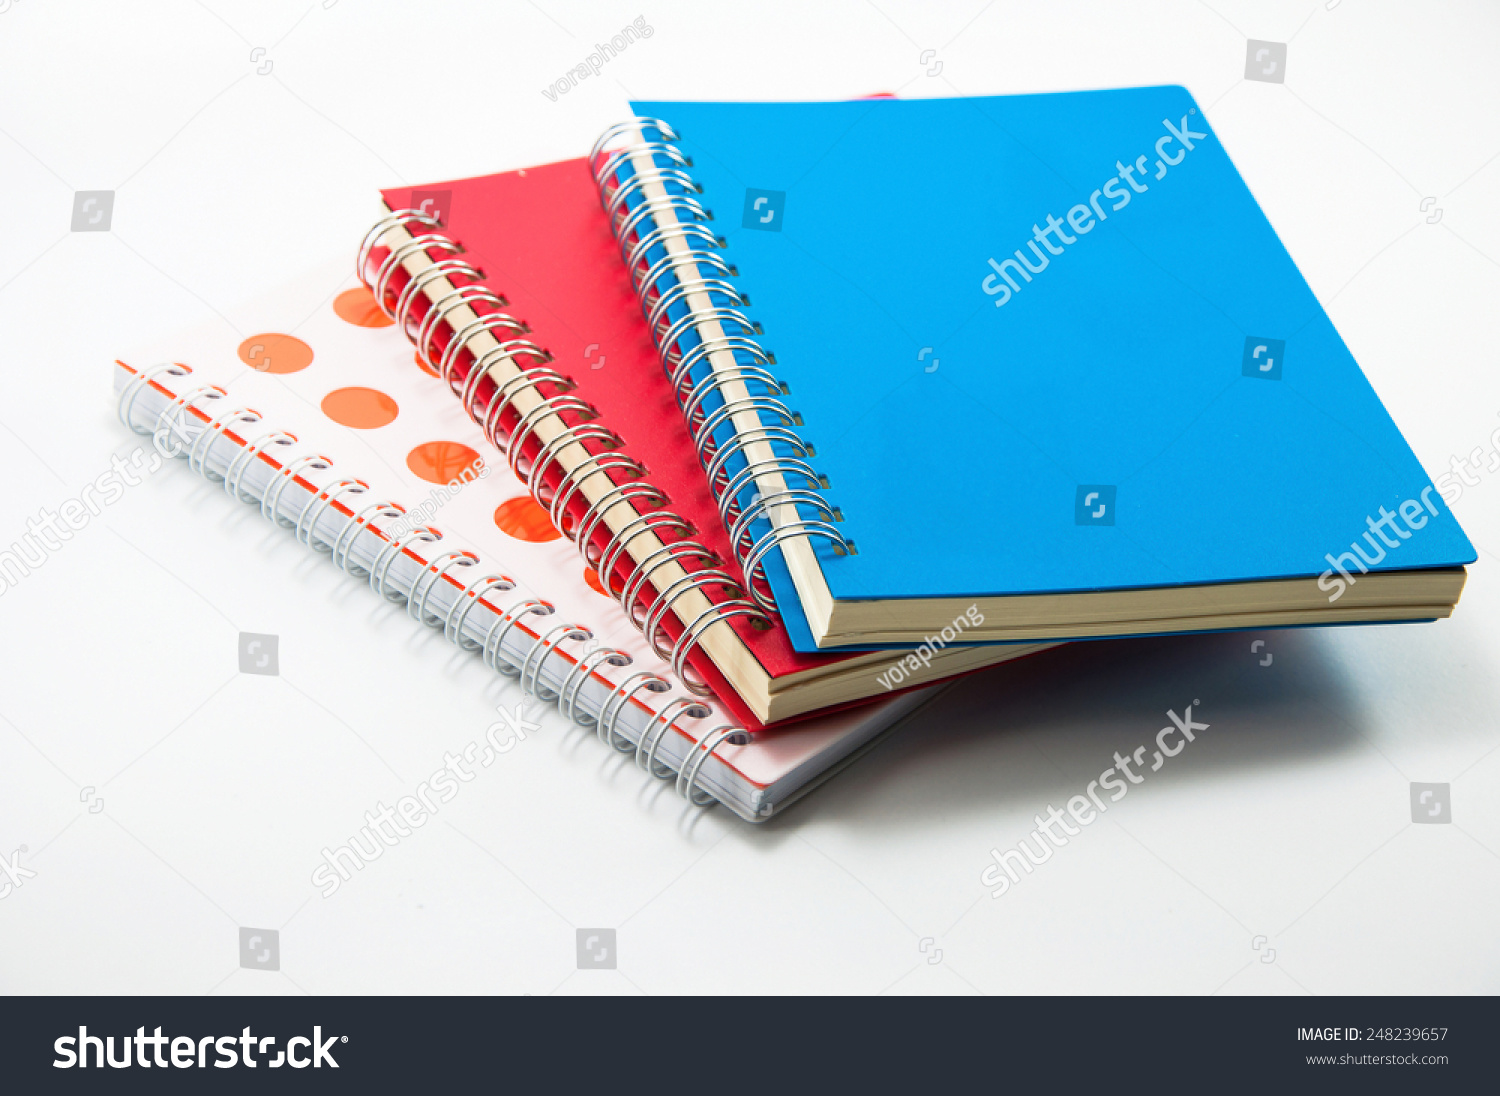 Notebooks cover binder